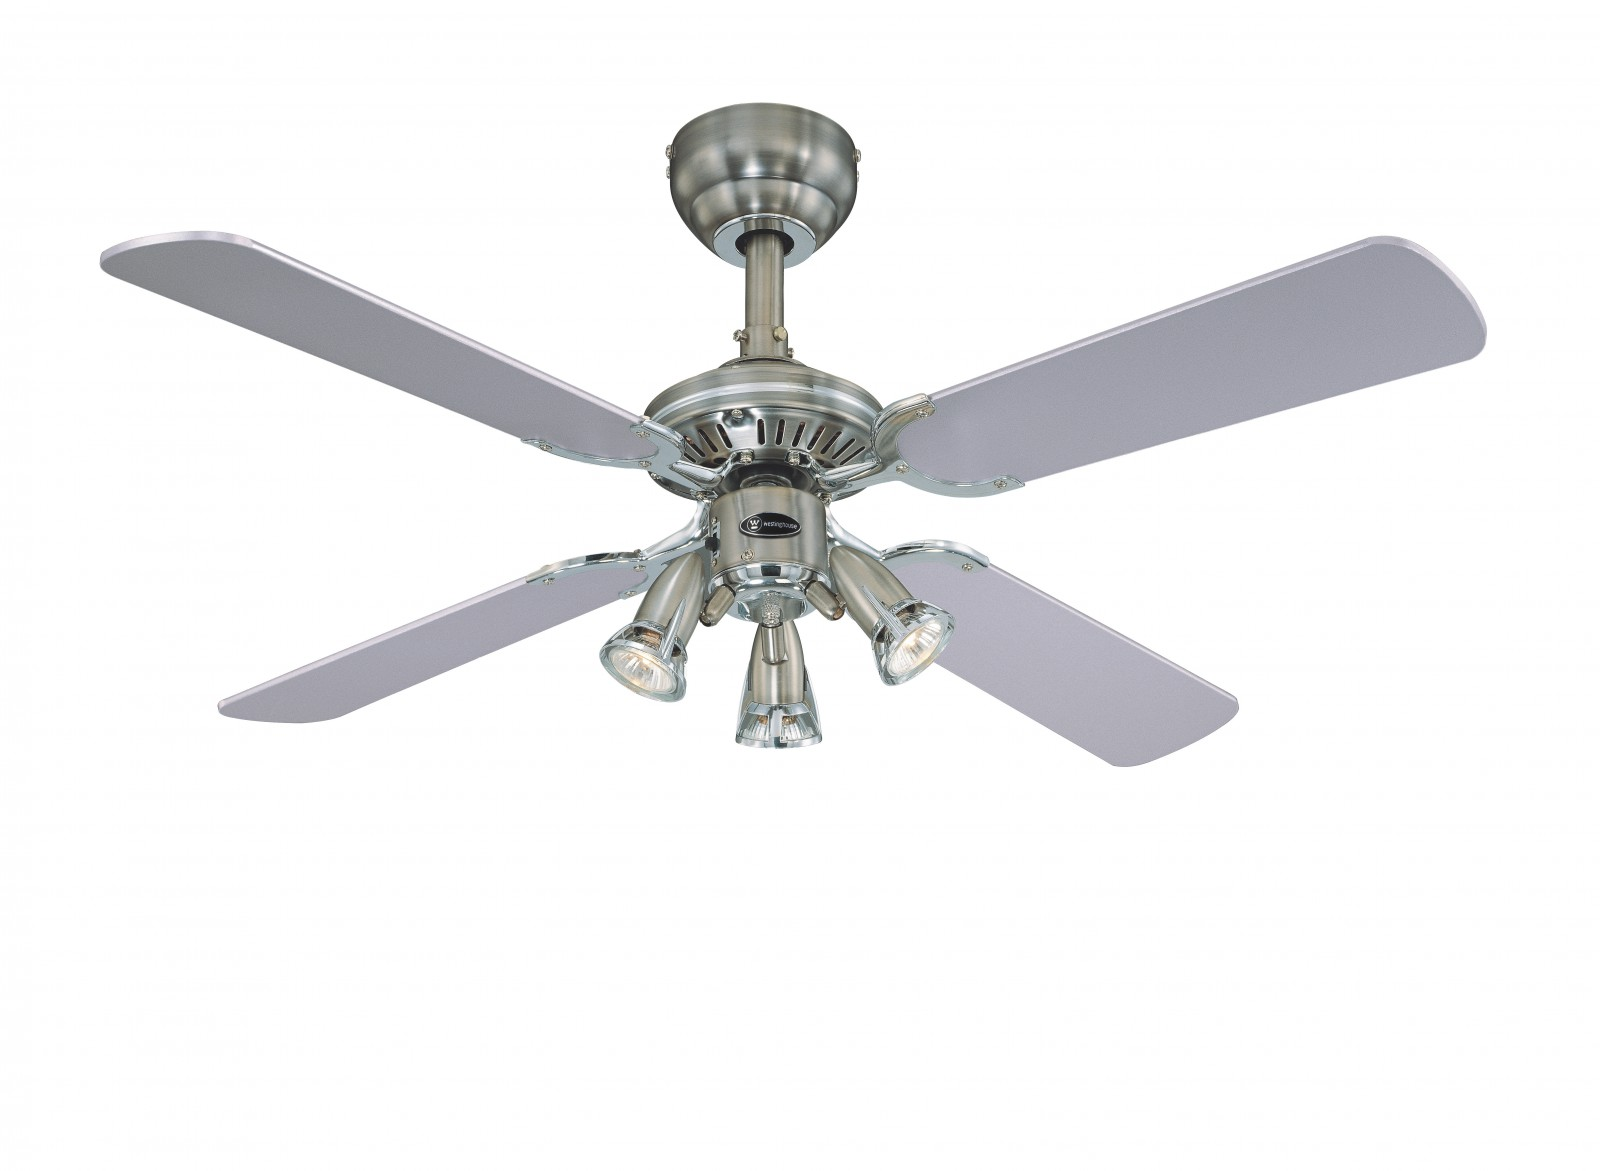 Big Ceiling Fans Australia Westinghouse Ceiling Fan Princess Cm With Light Ebay